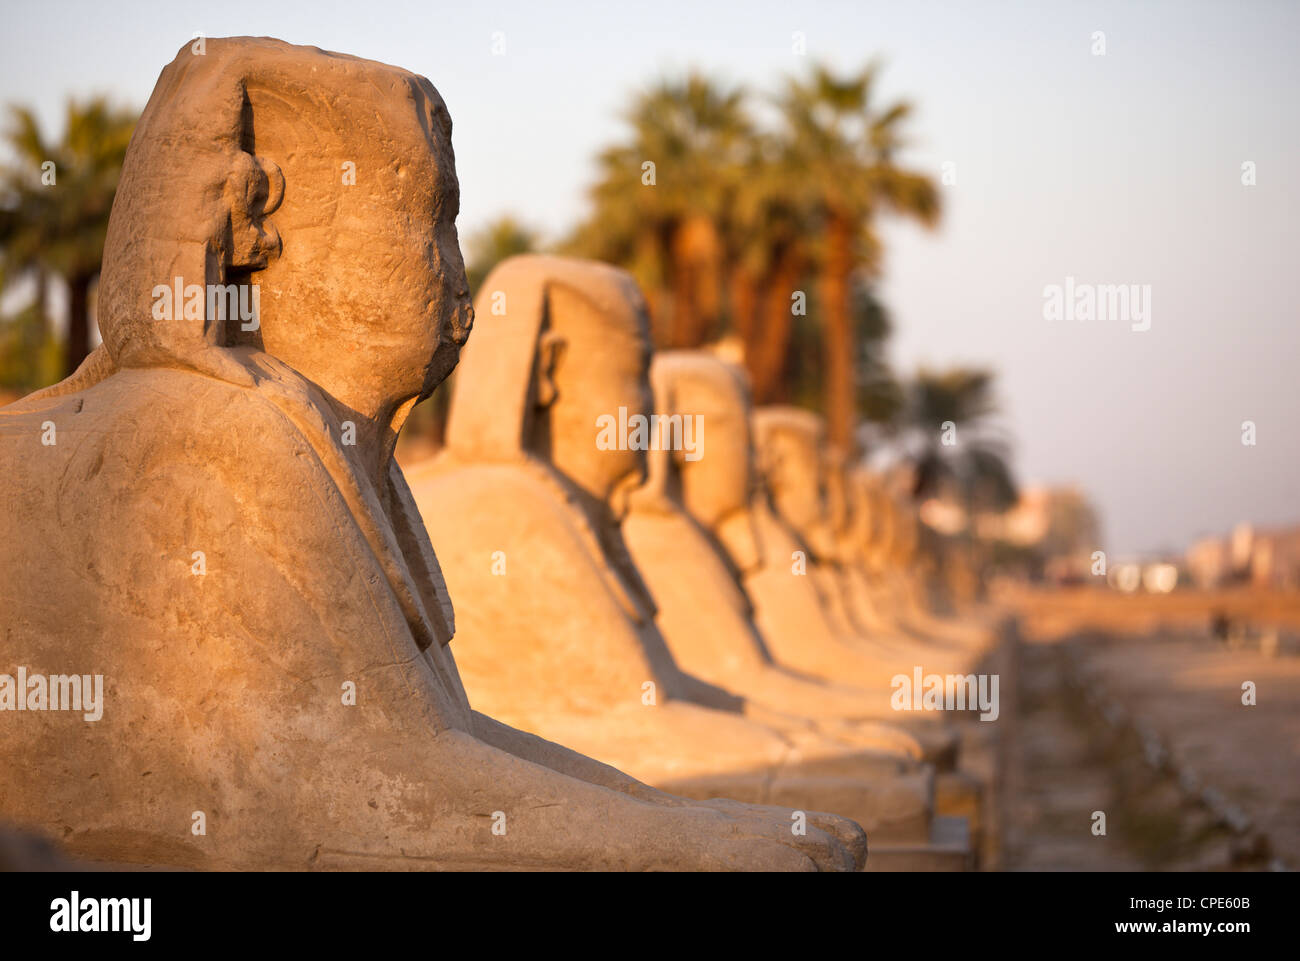 Luxor Temple, Luxor, Thebes, UNESCO World Heritage Site, Egypt, North Africa, Africa - Stock Image